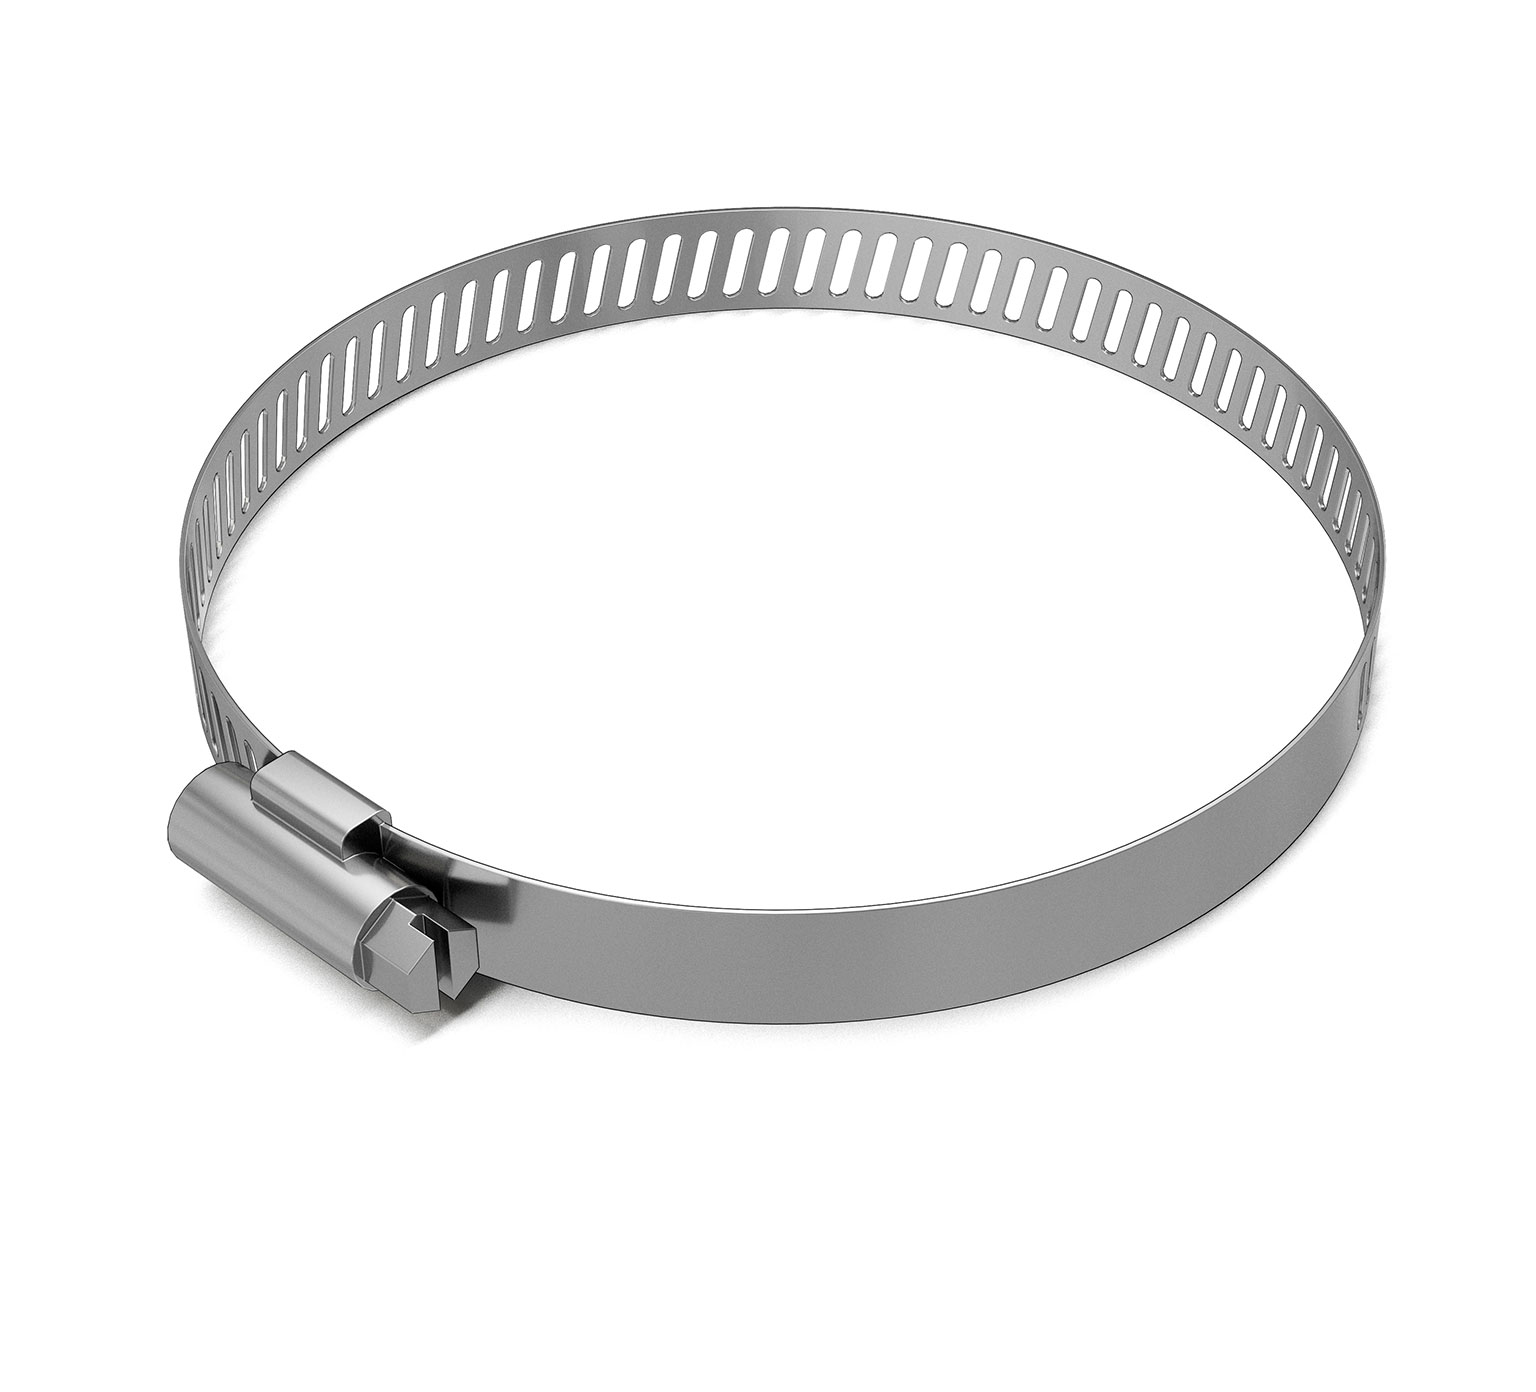 23498 Stainless Steel Hose Clamp - 3.562 - 4.5 in x 0.5 in alt 1